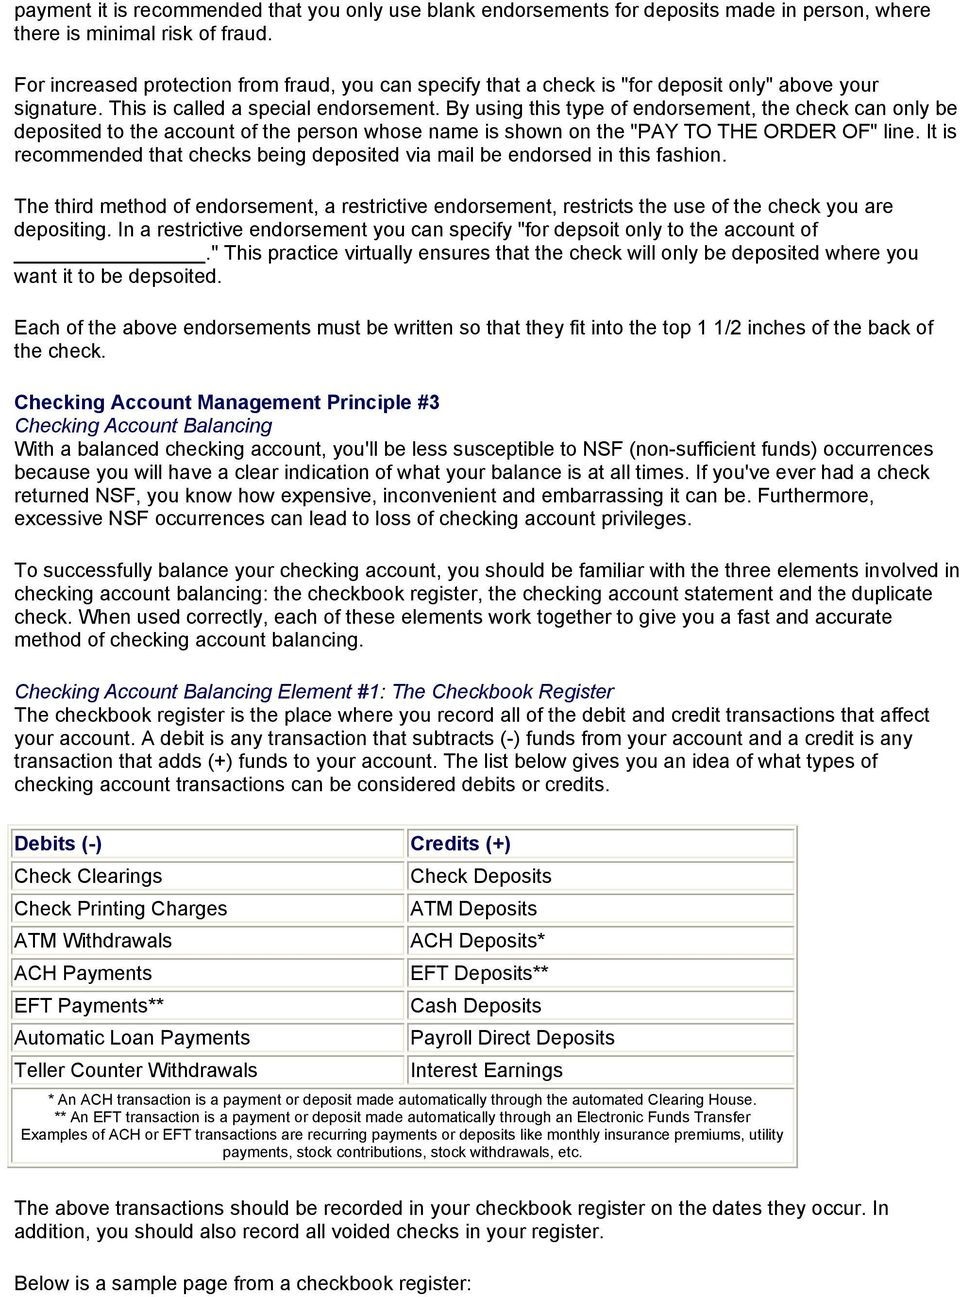 tips on managing your checking account pdf